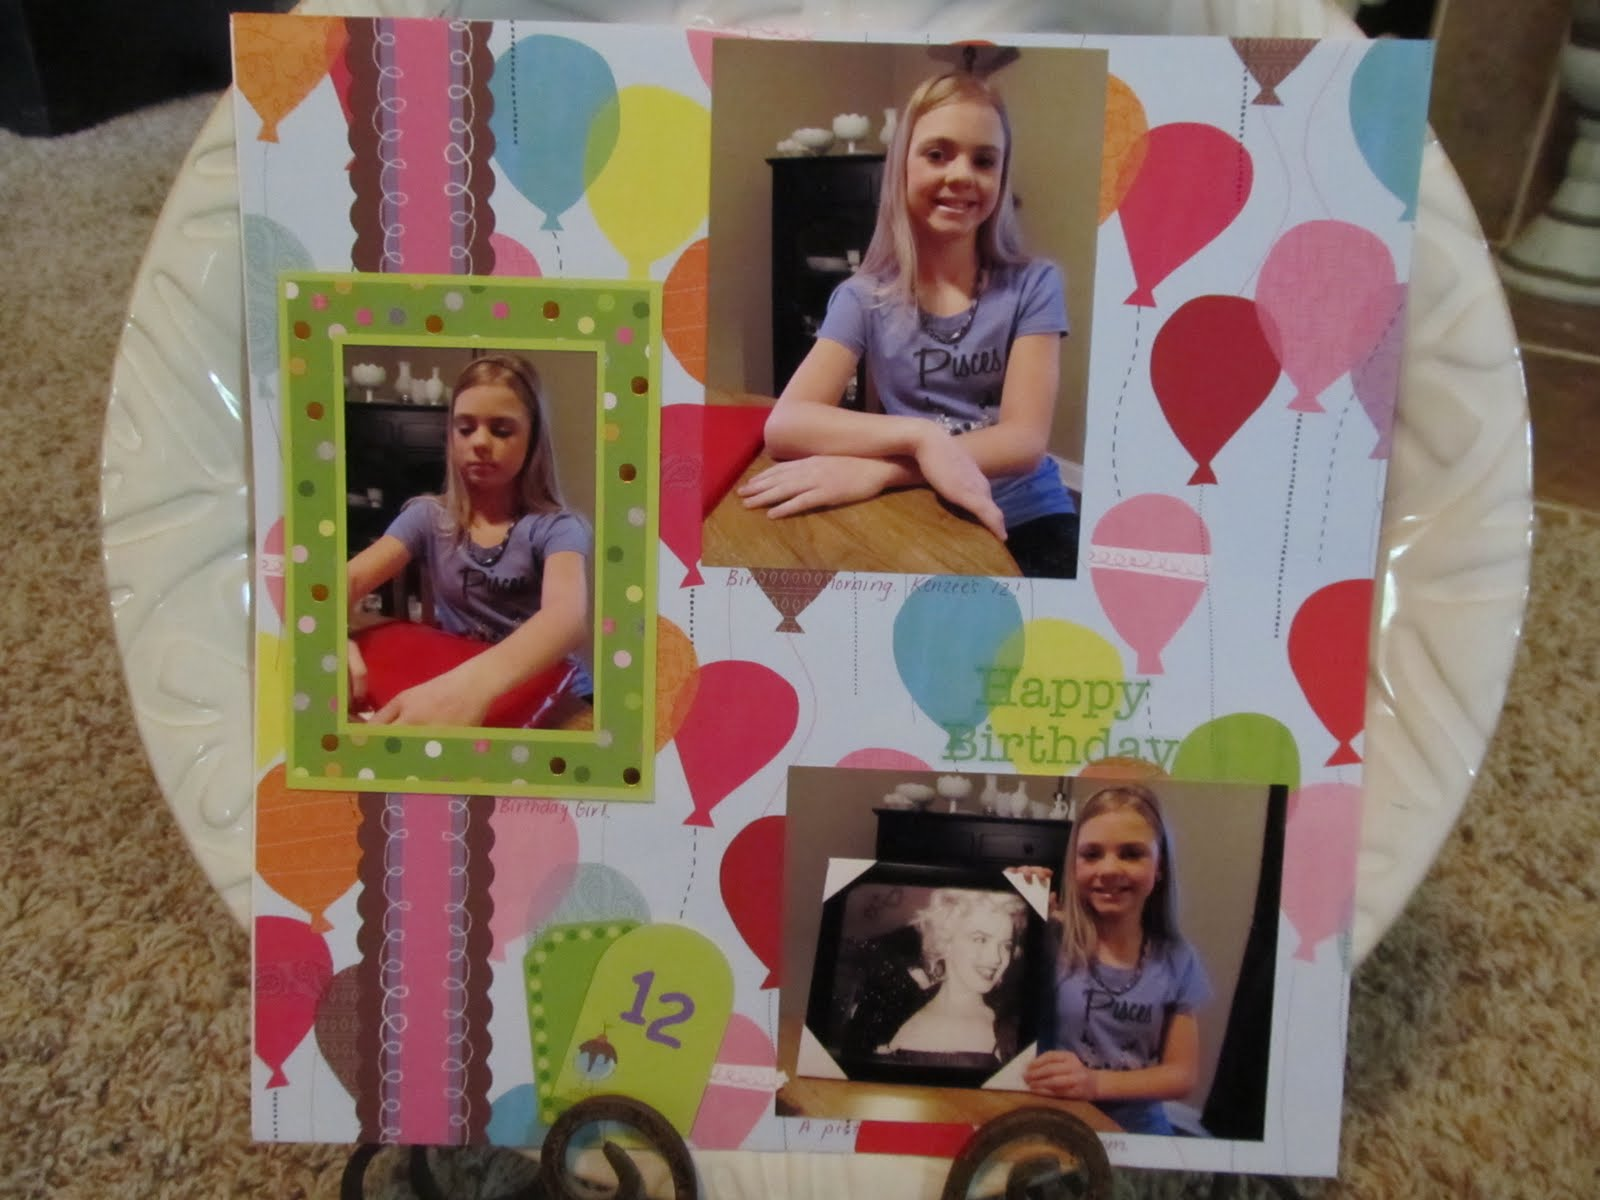 Justin bieber scrapbook ideas - Birthday Morning Opening A Gift Before School She Loves Marilyn Monroe So We Got Her This Print It Goes Well In Her Paris Bedroom